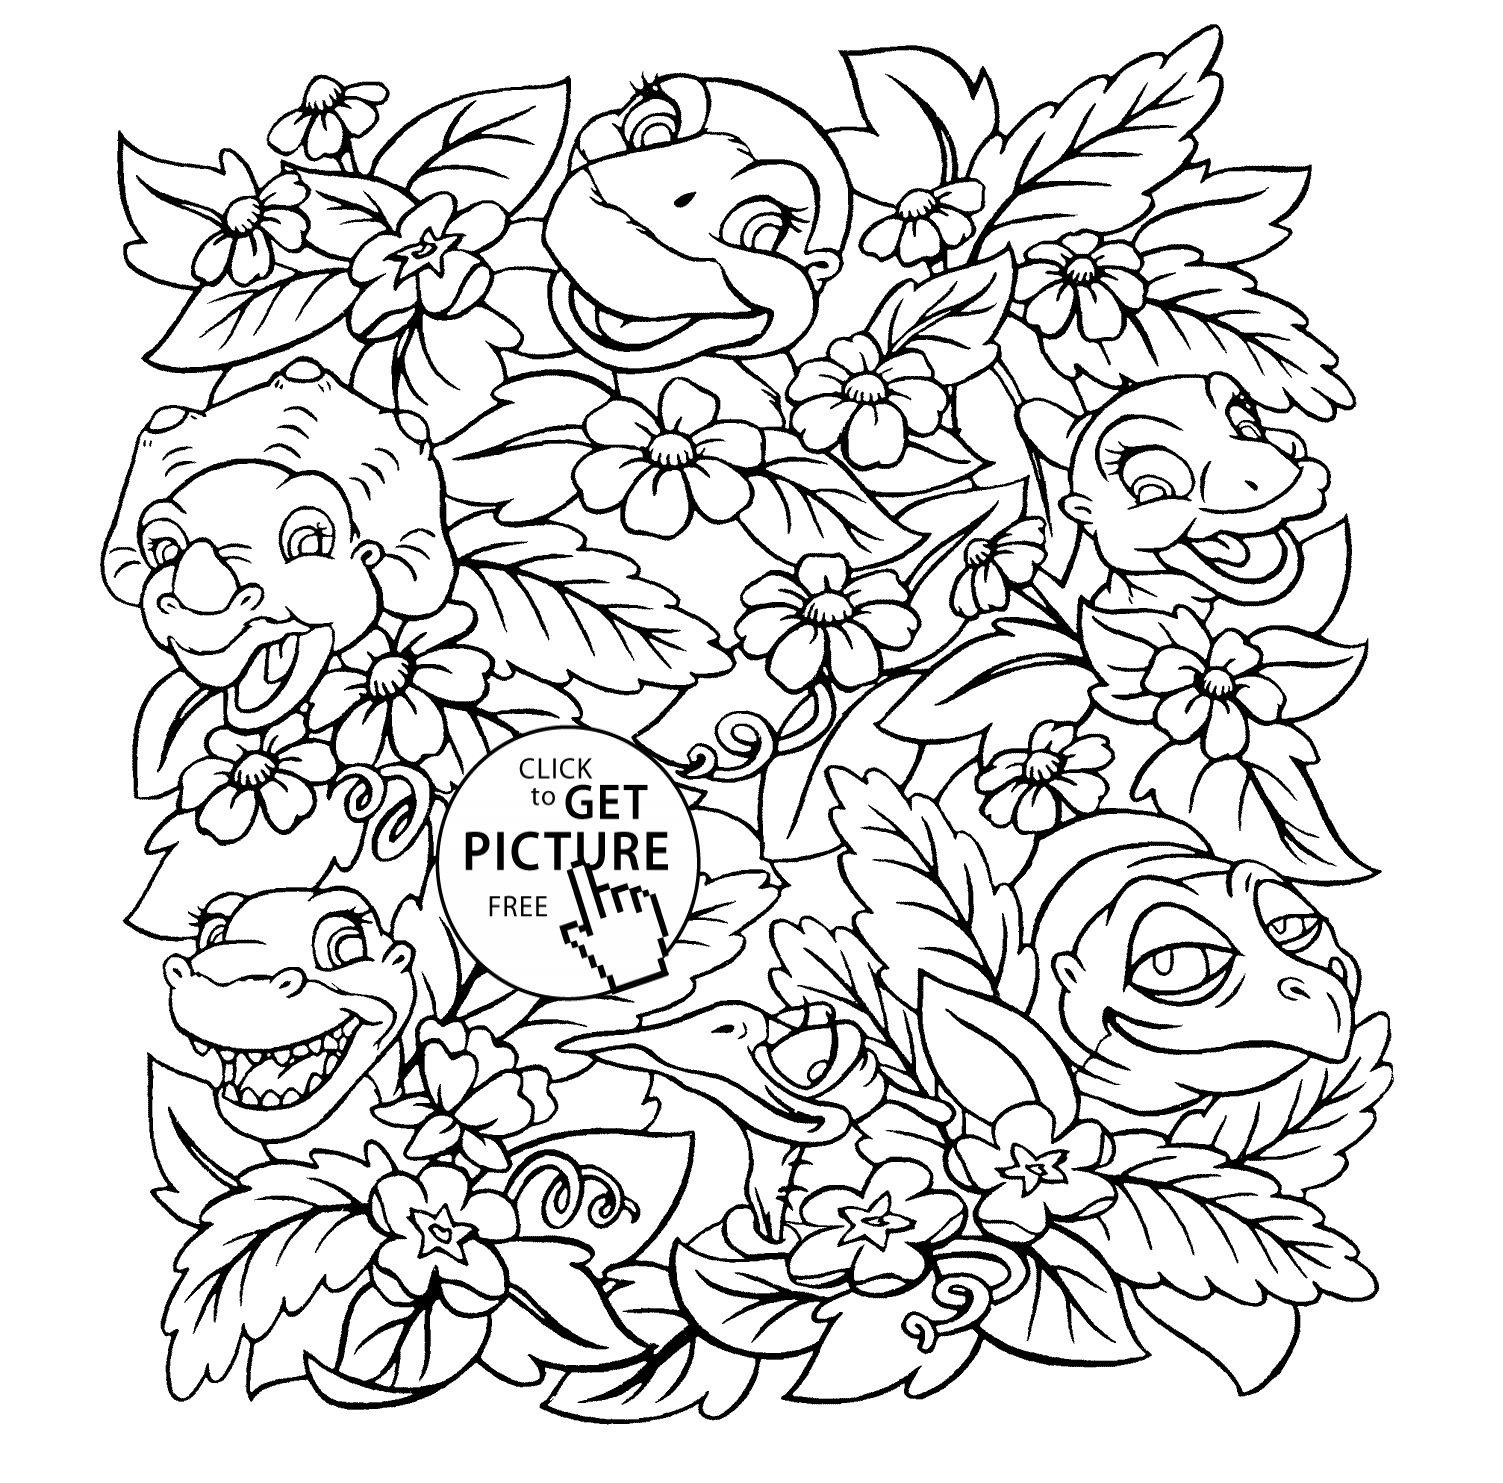 20 Land before Time Coloring Pages Selection | FREE COLORING PAGES ...